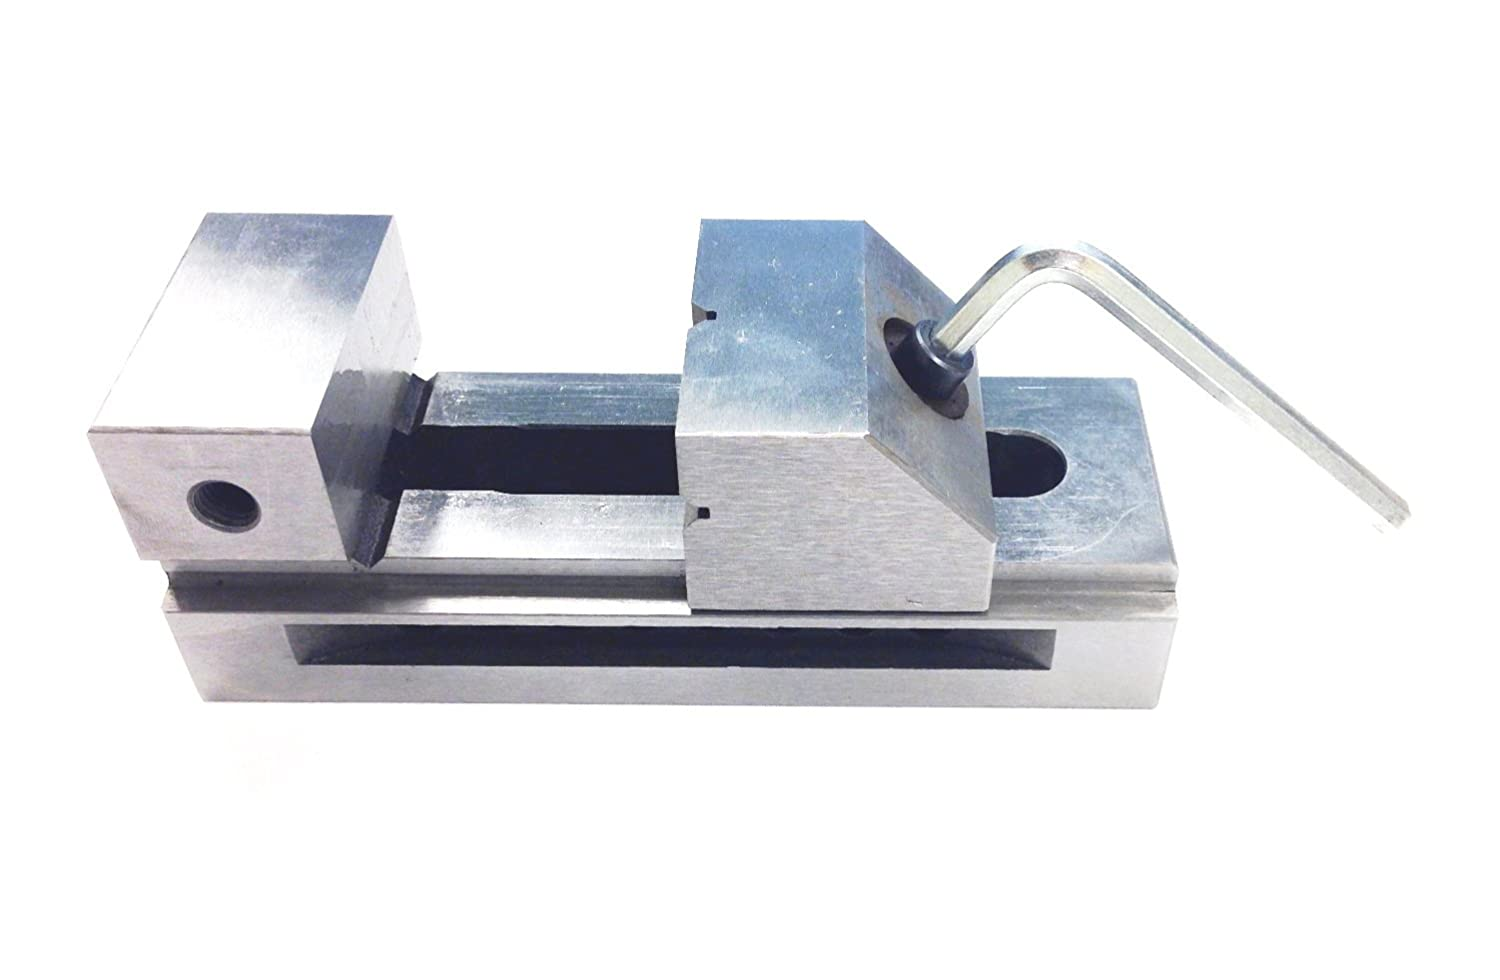 HHIP 3900-0020 1 Inch Precision Parallel Screwless Vise ABS Import Tools Inc.